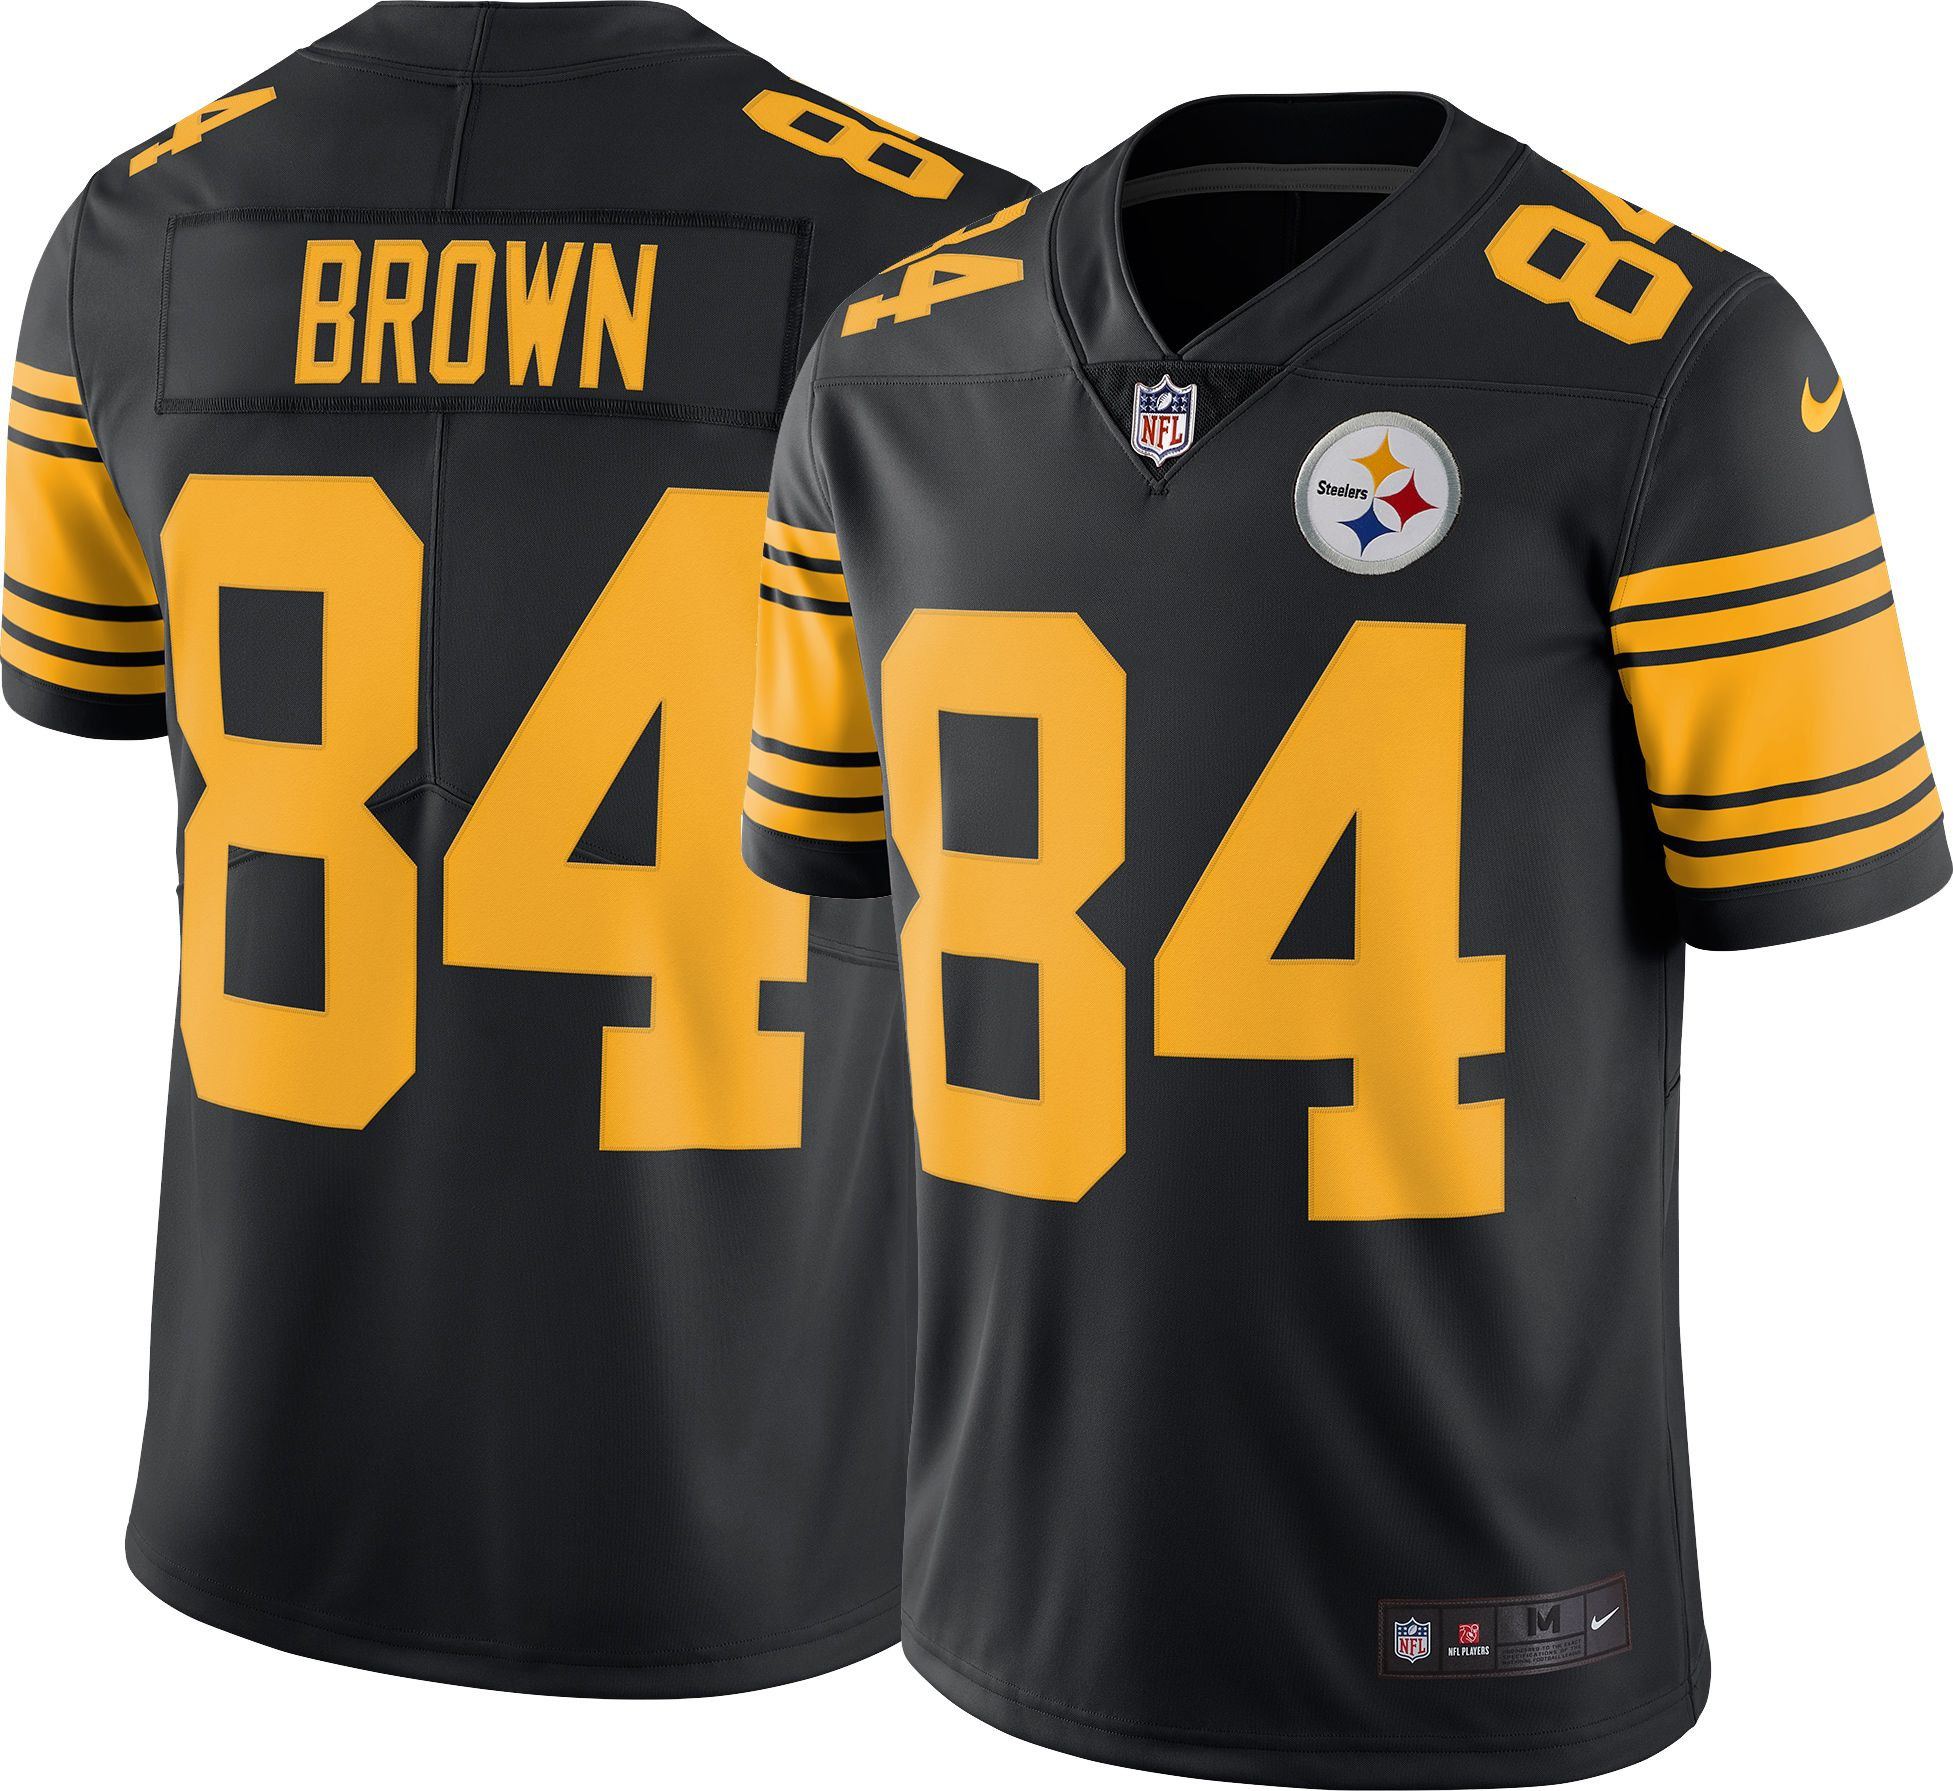 Discount Antonio Football Nfl Cheap Brown Throwback Jerseys Jersey Jerseys Mens